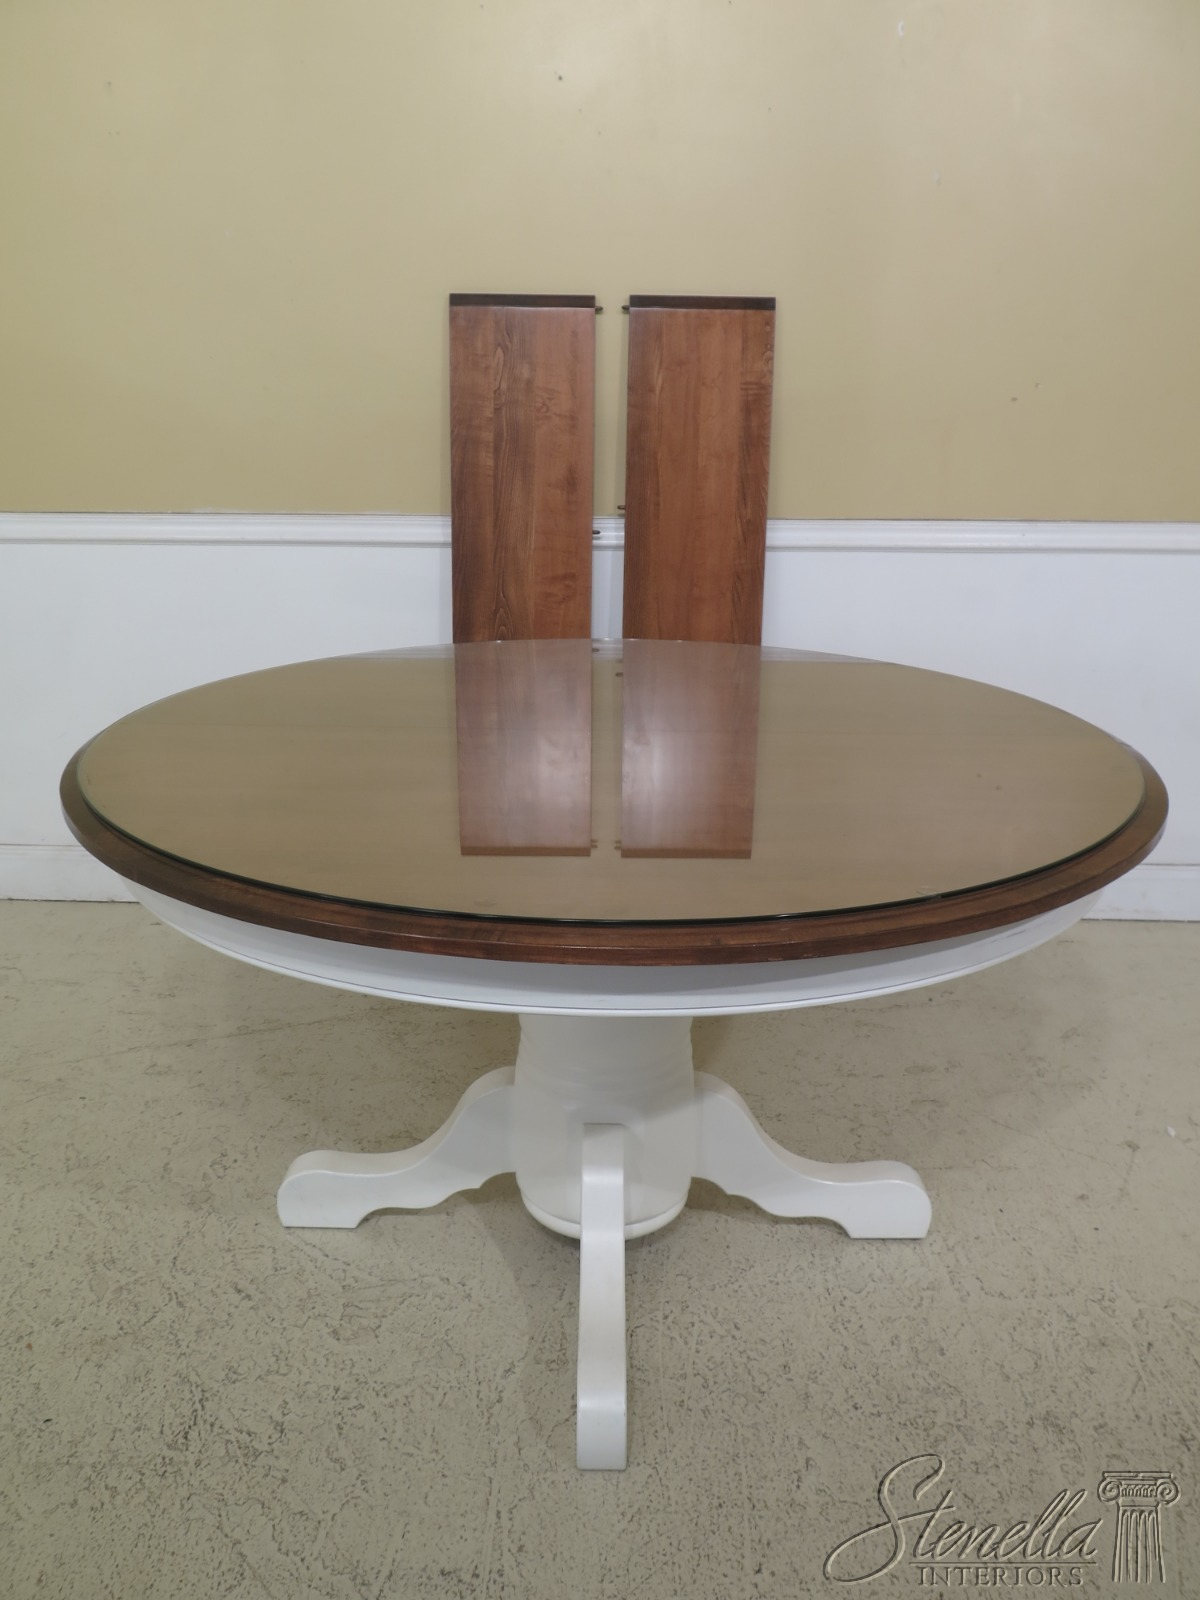 Details about LF47260EC: Round Maple & White Painted Dining Room Kitchen  Table